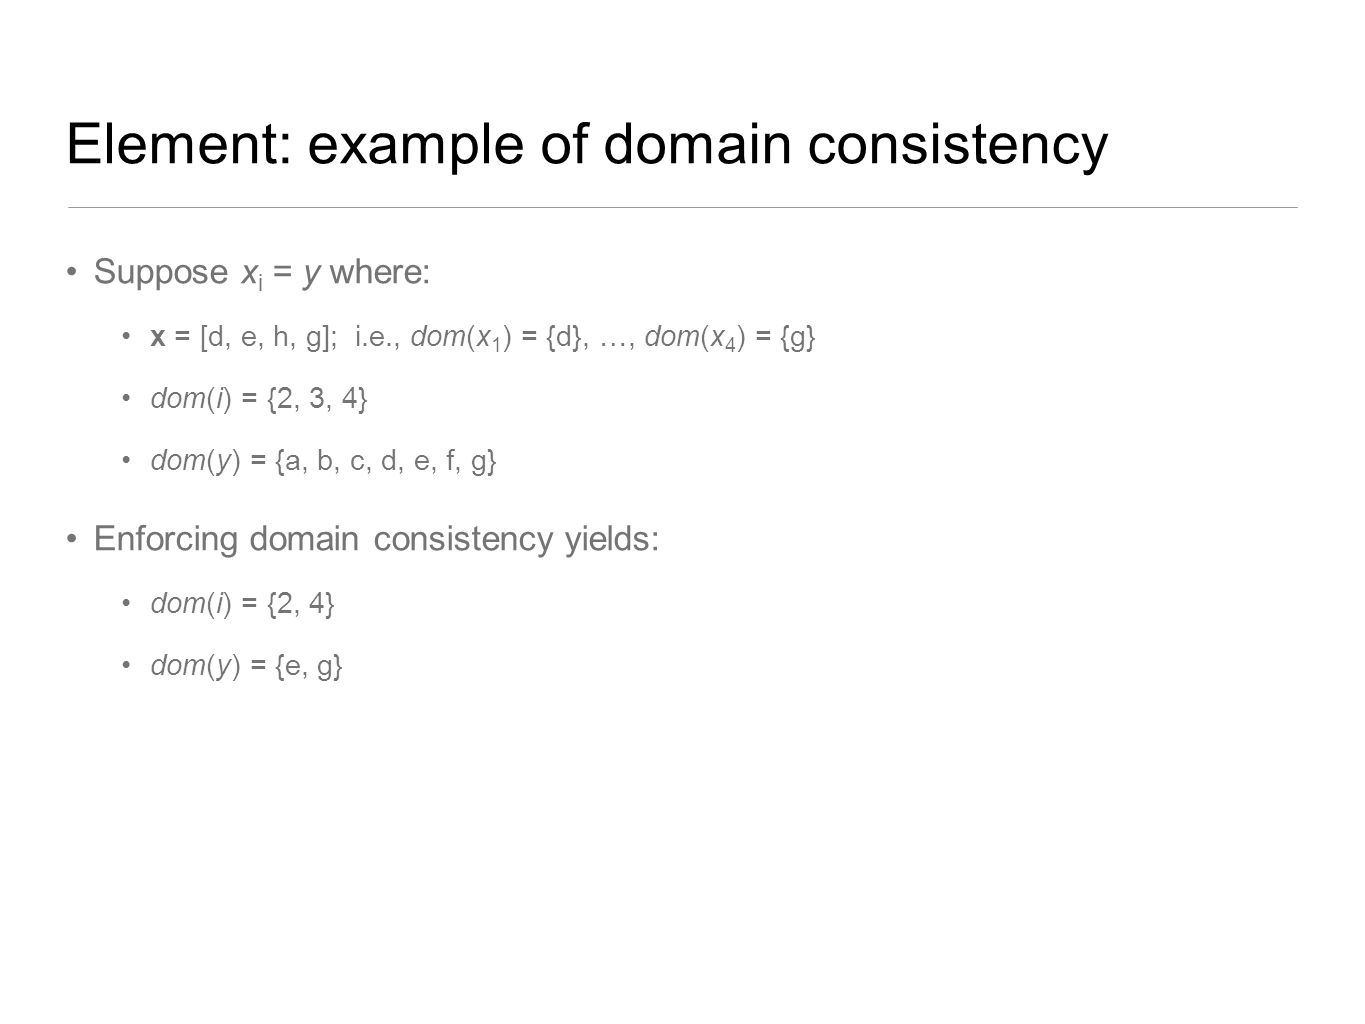 Element: example of domain consistency